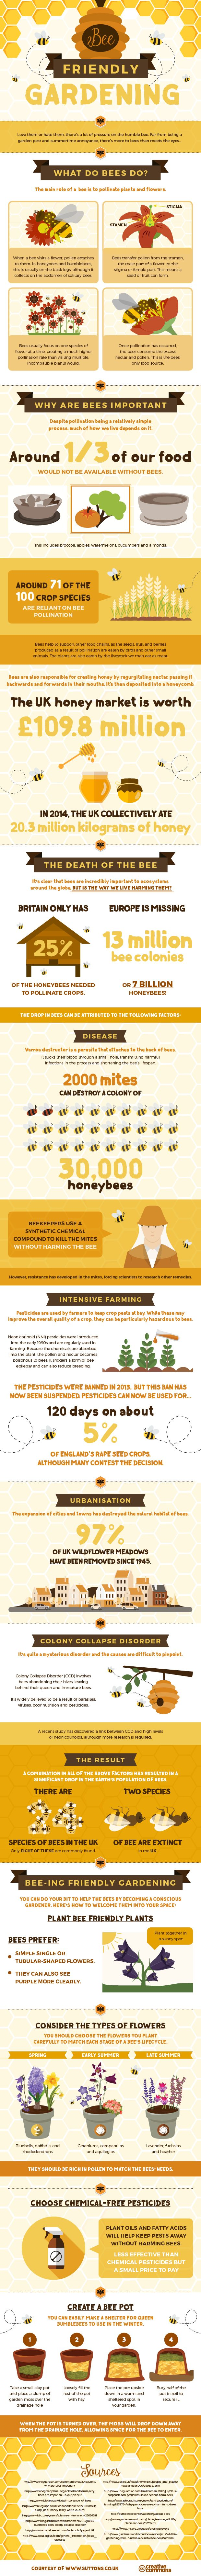 Bee Friendly Gardening #infographic